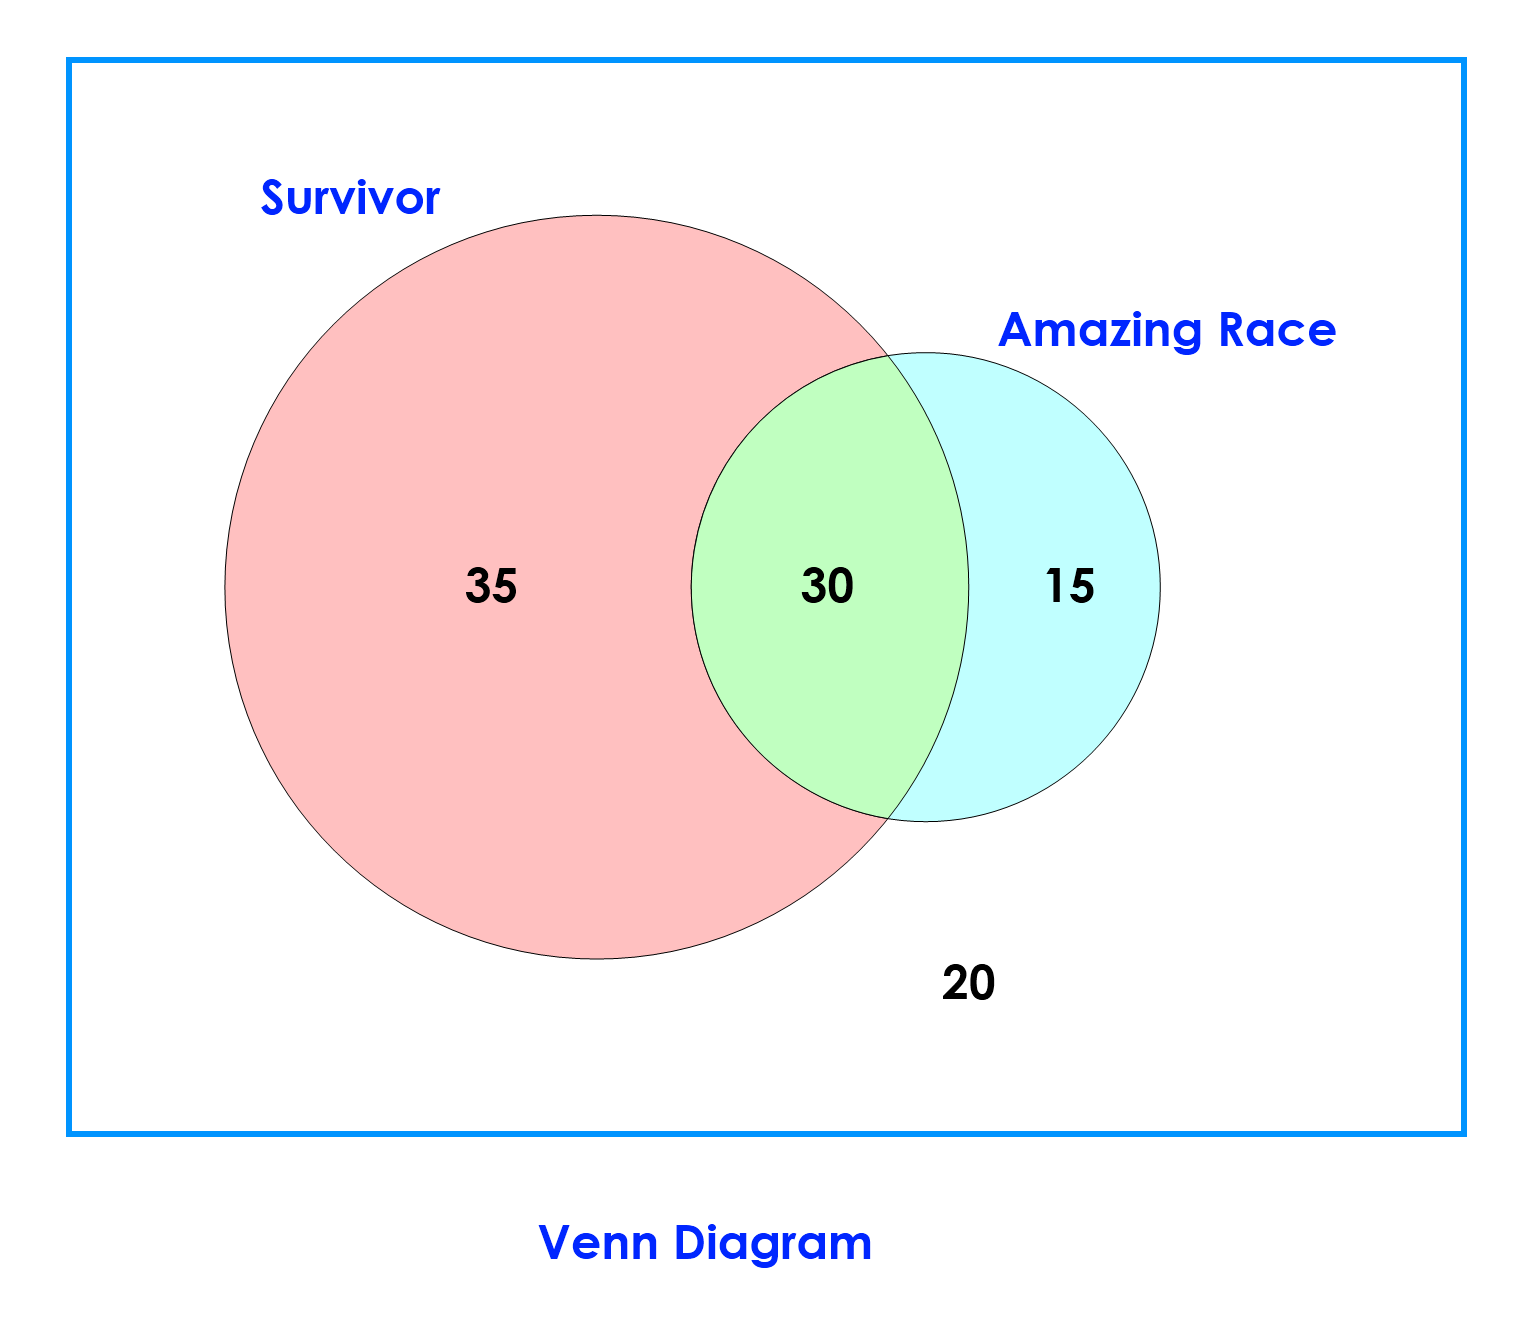 Venn diagram reality show preferences venn diagram showing student preferences for the reality shows survivor and amazing race pooptronica Images